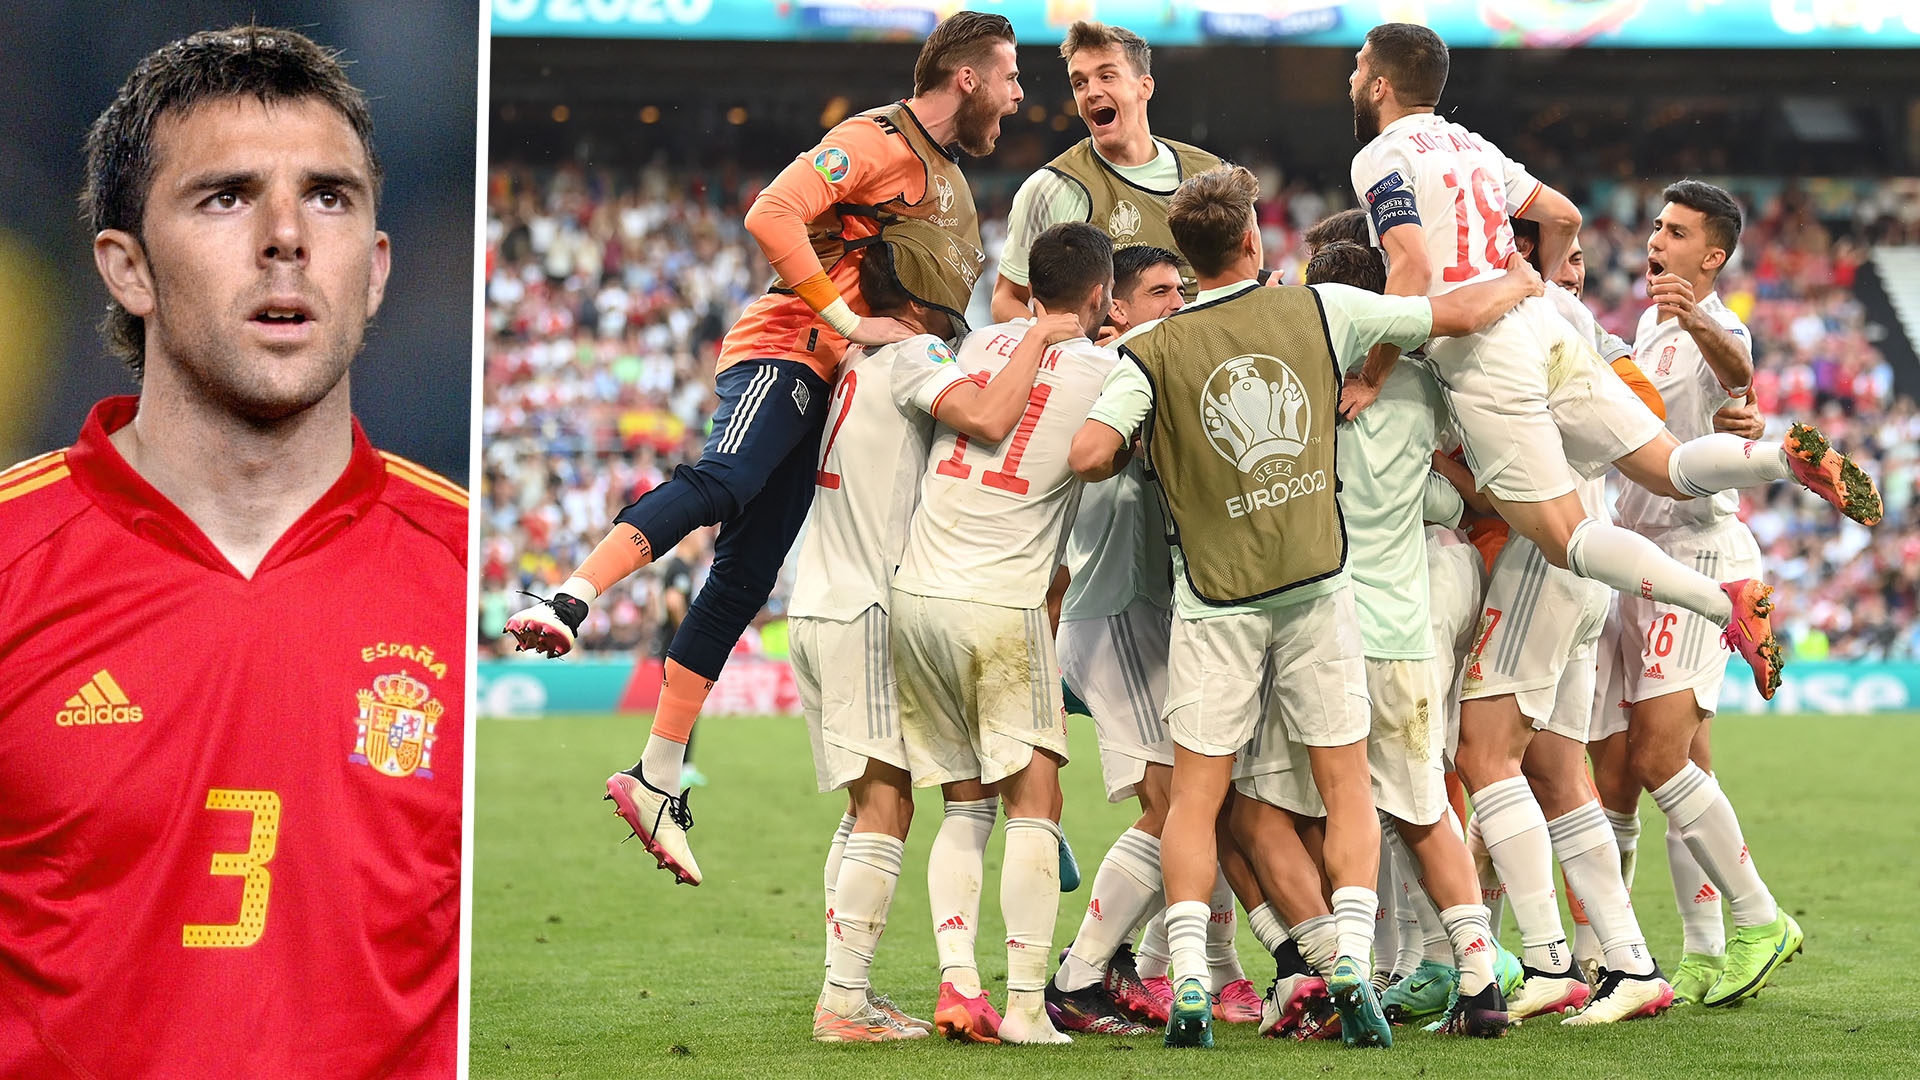 Marchena calls on Spain to dream of Euro 2020 glory & expects Xhaka absence to hurt Switzerland